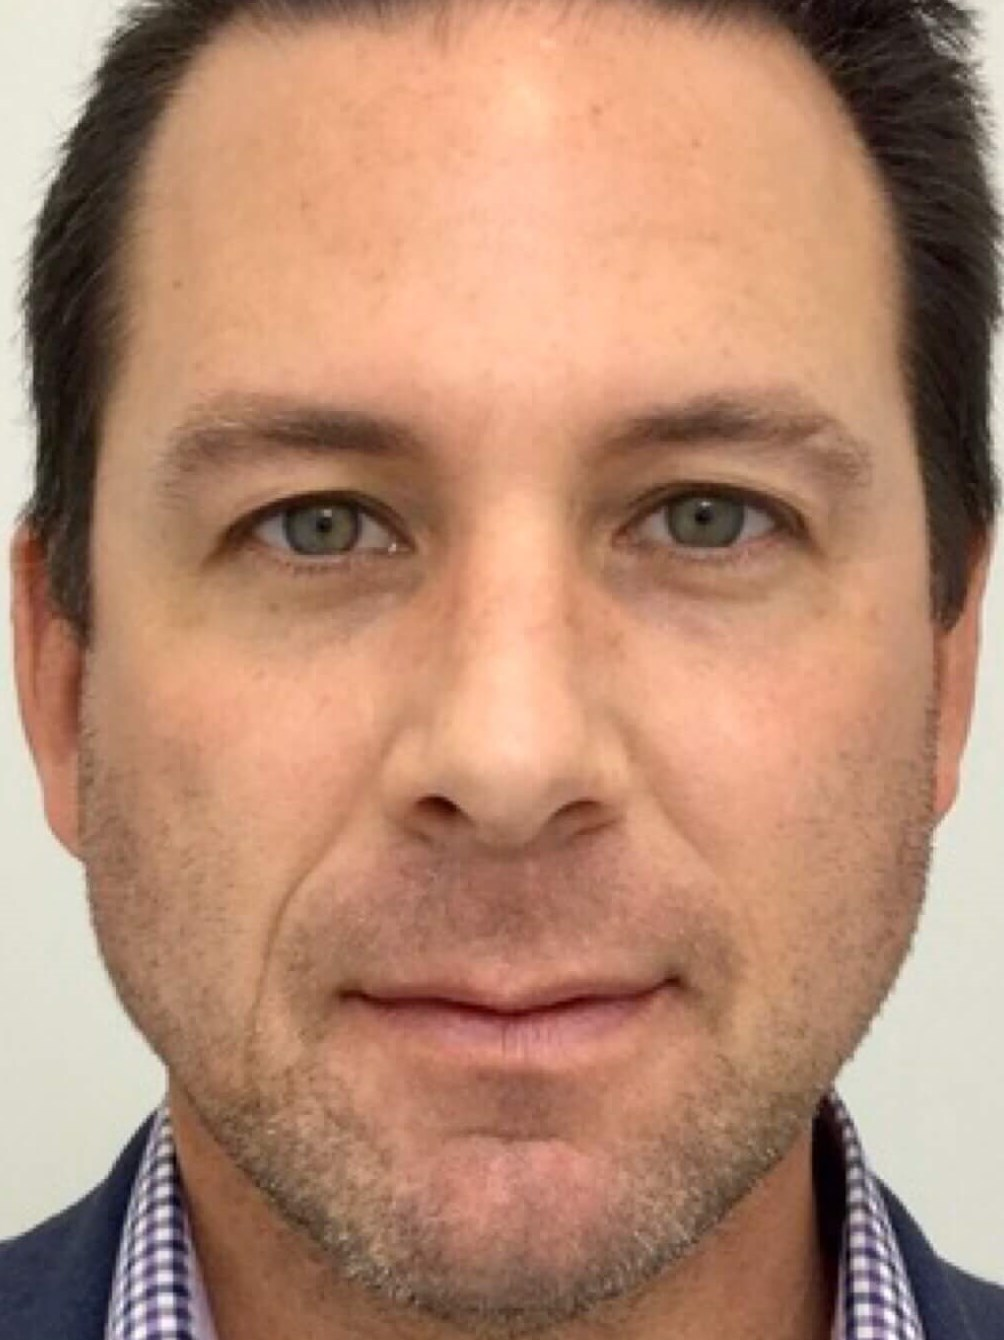 DALLAS MAN HAS BELLAFILL COLLAGEN INJECTIONS TO IMPROVE MIDFACE VOLUME LOSS